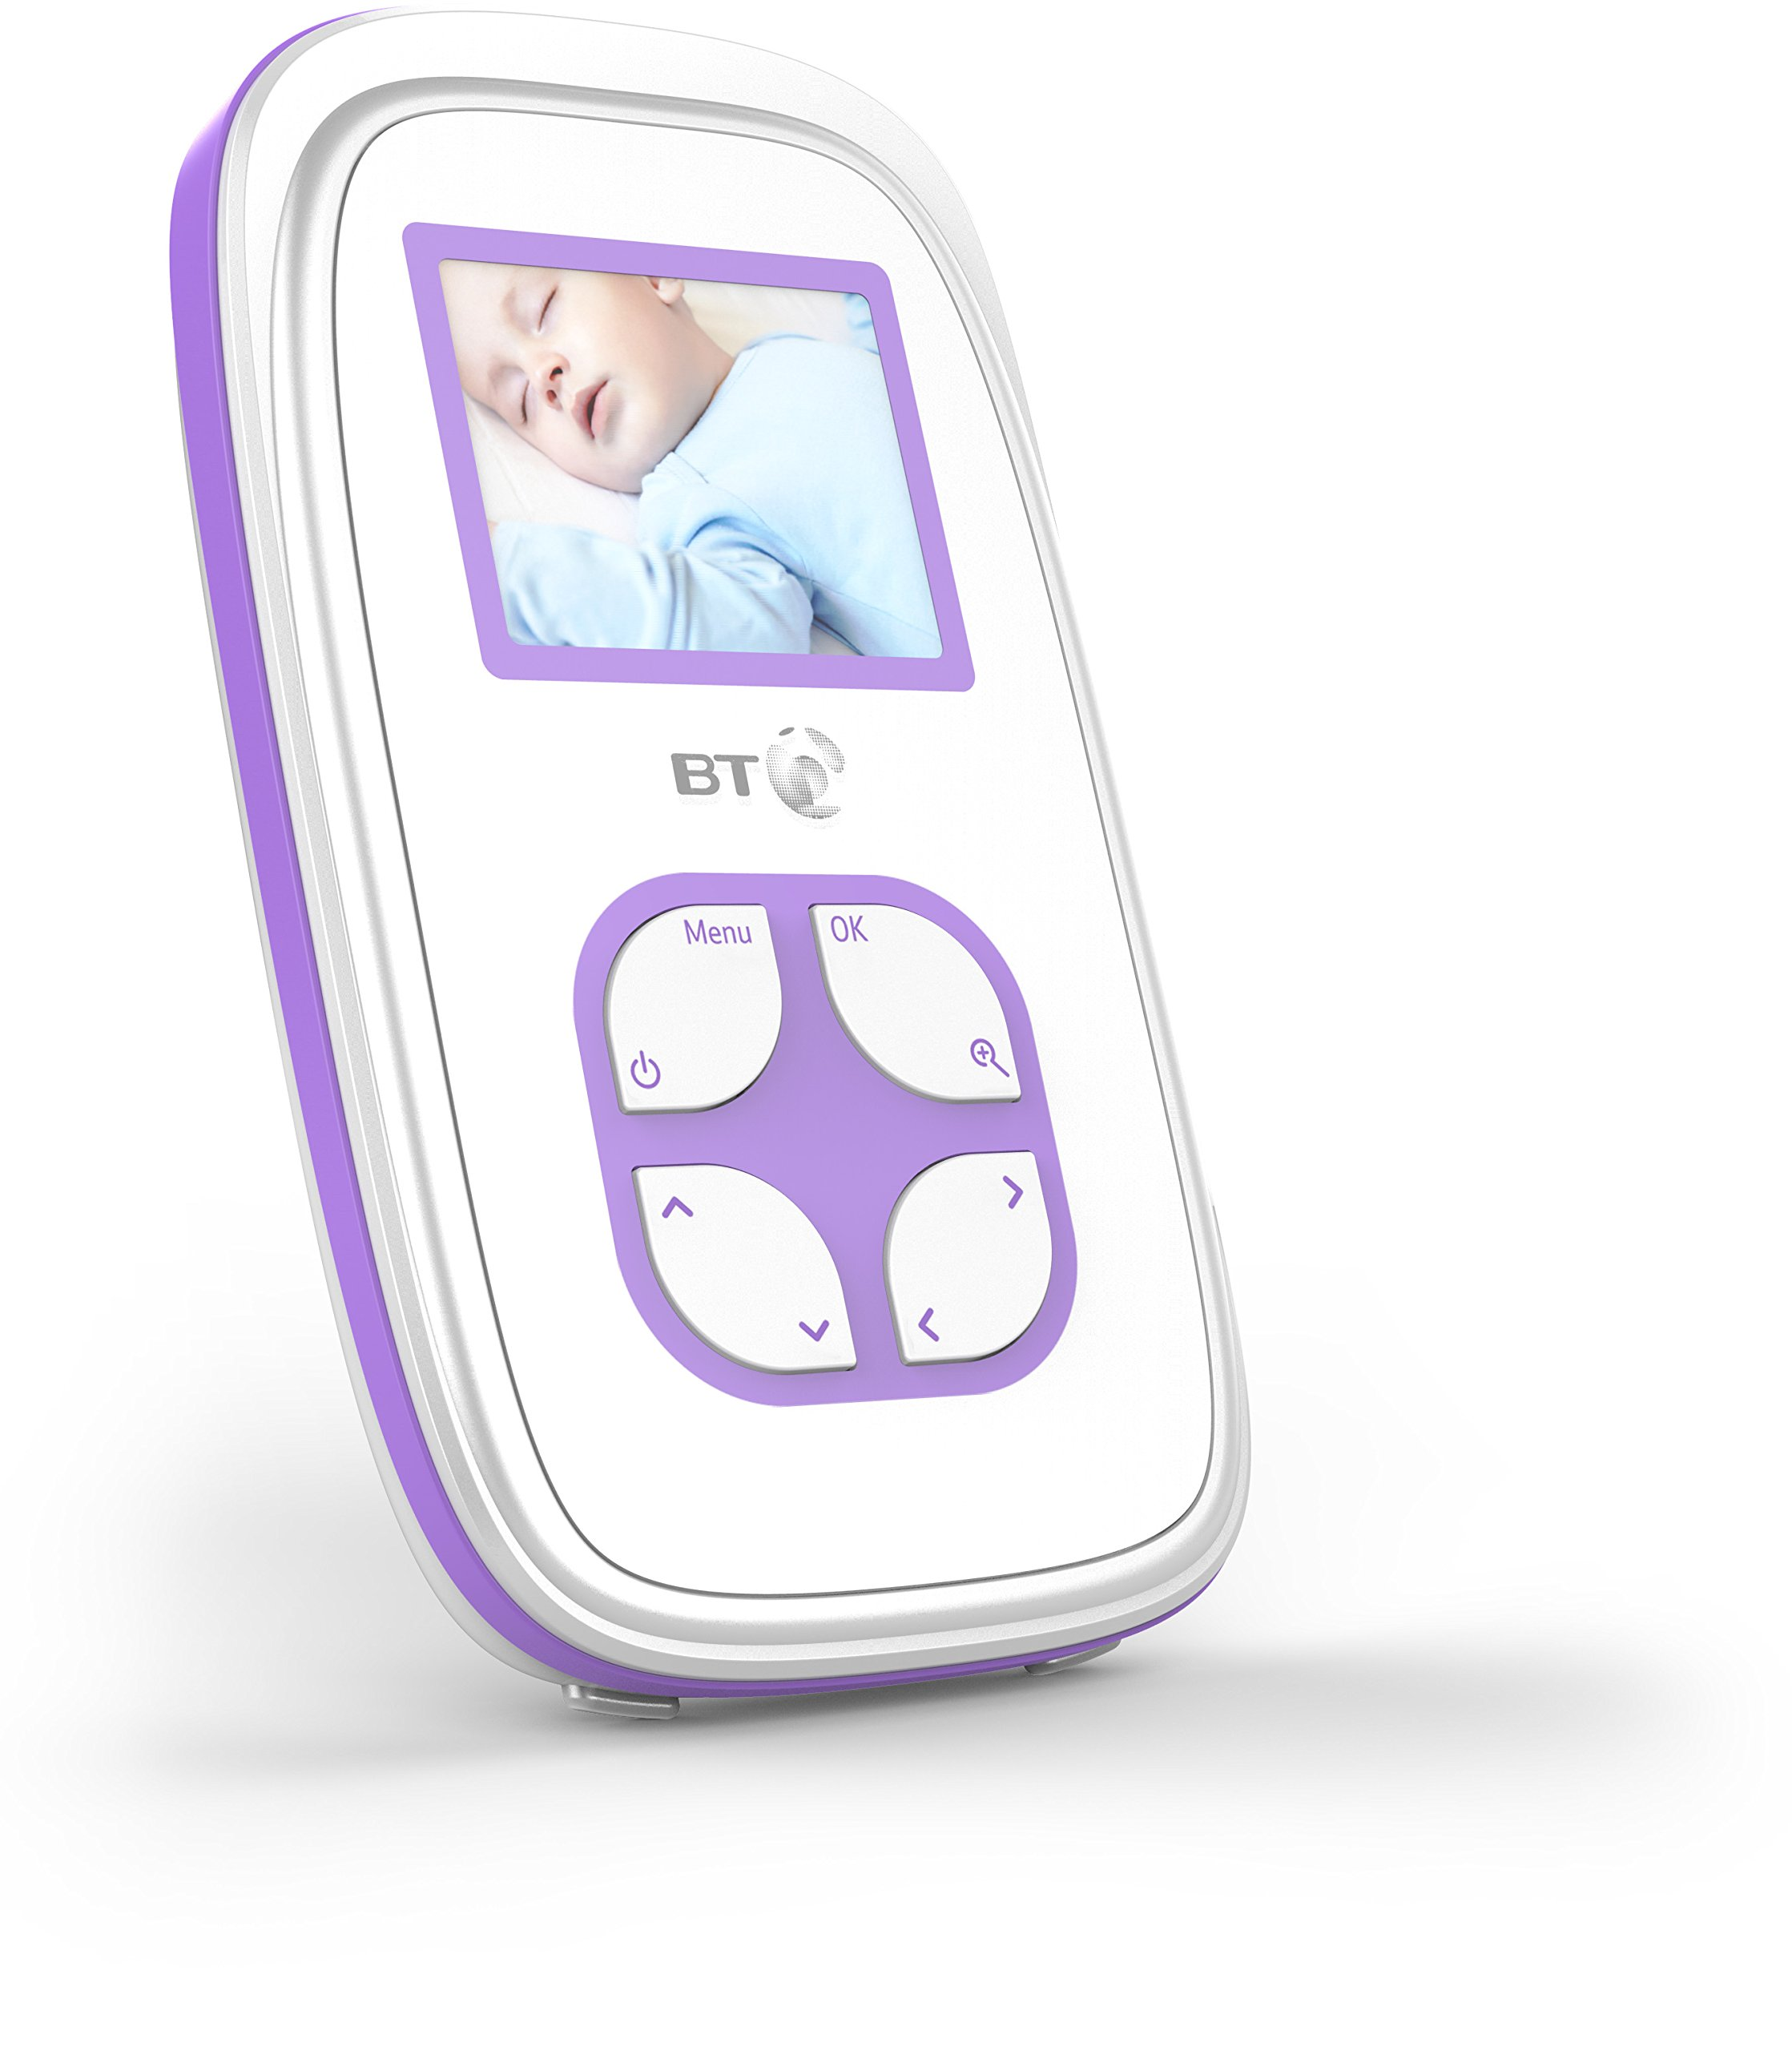 BT Video Baby Monitor 2000 BT 2 inch screen with night vision Manual (non-remote) pan/tilt mechanism Portable parent unit so you can move freely around your home 2